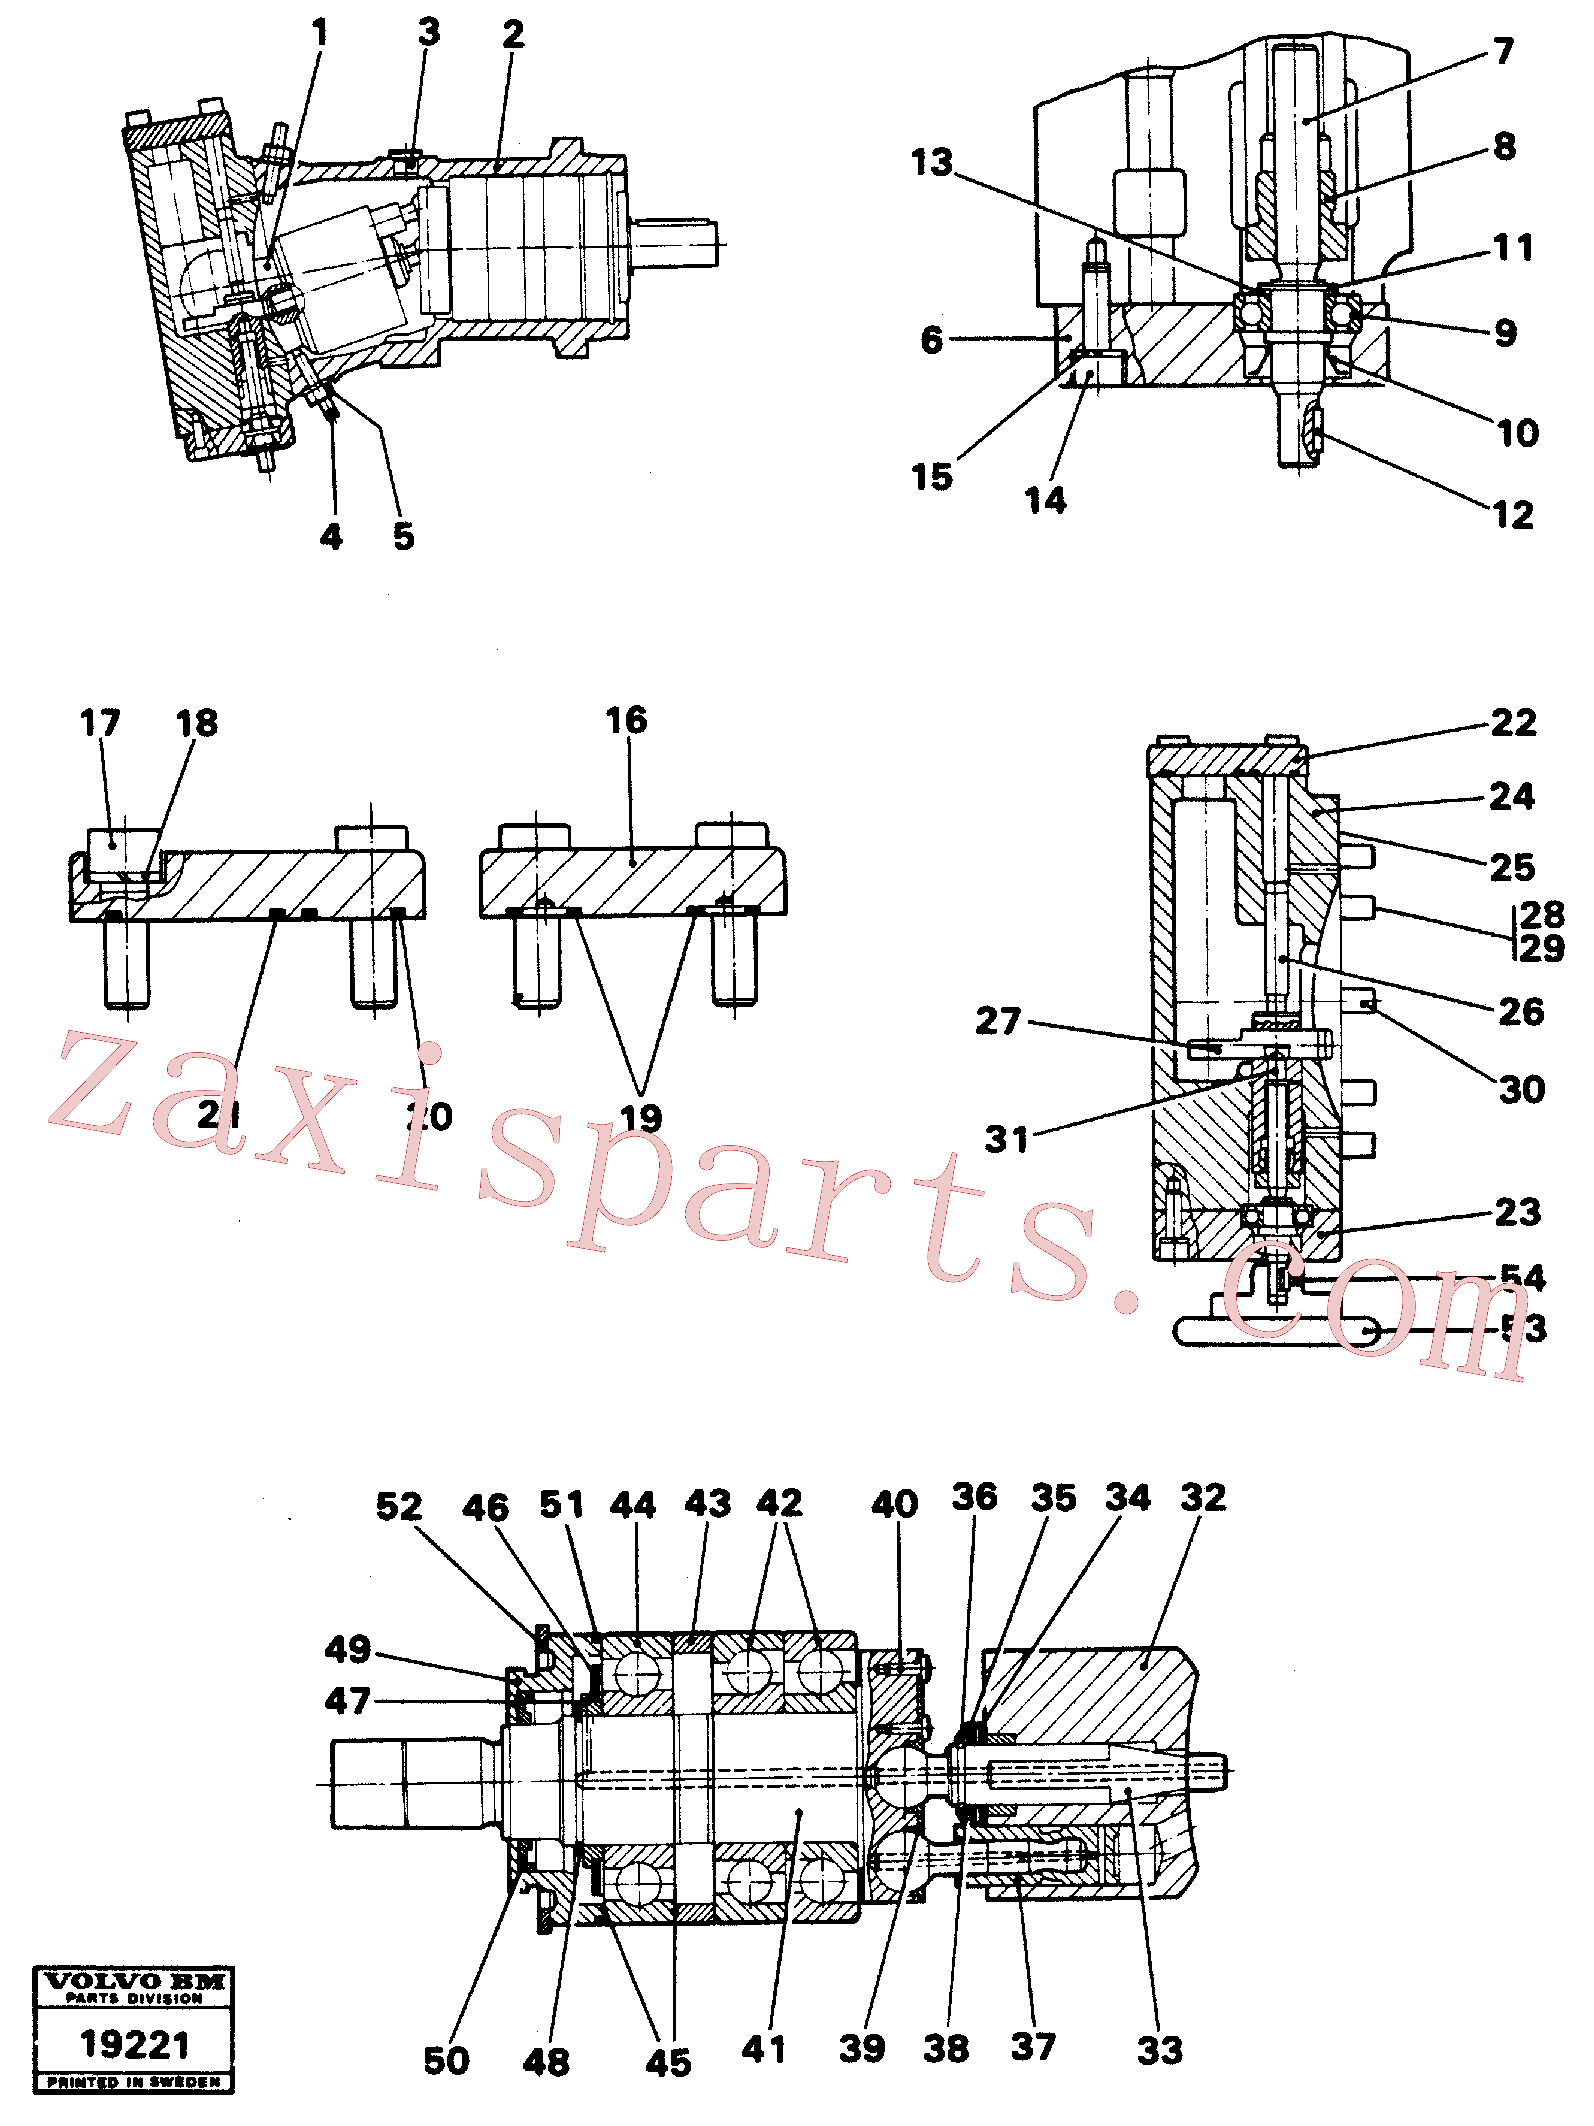 VOE11705205 for Volvo Hydraulic pump(19221 assembly)